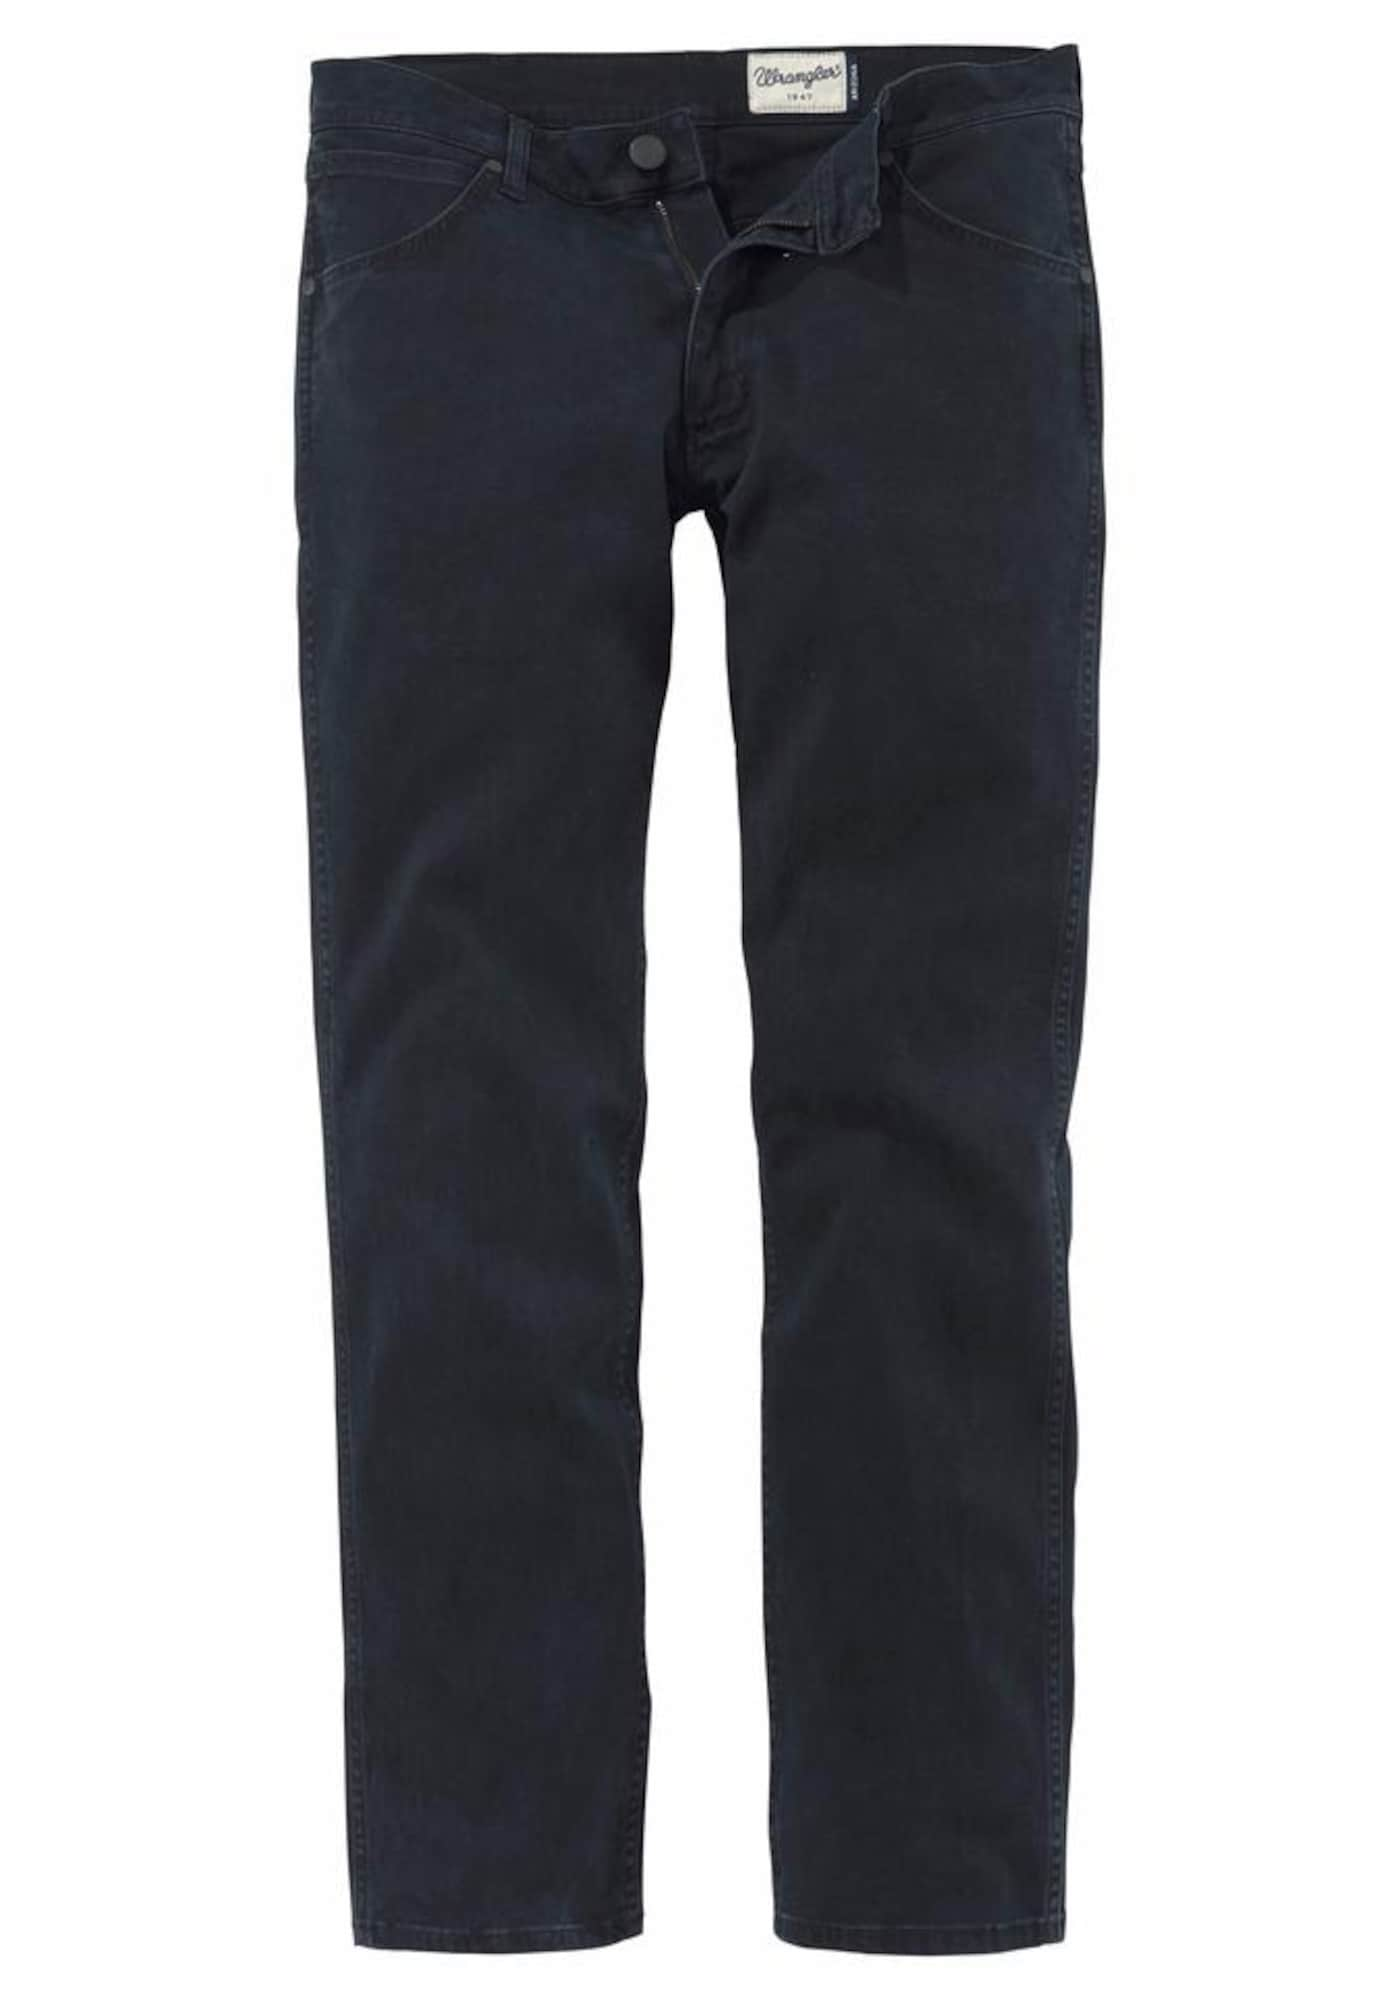 WRANGLER Heren Jeans Arizona navy